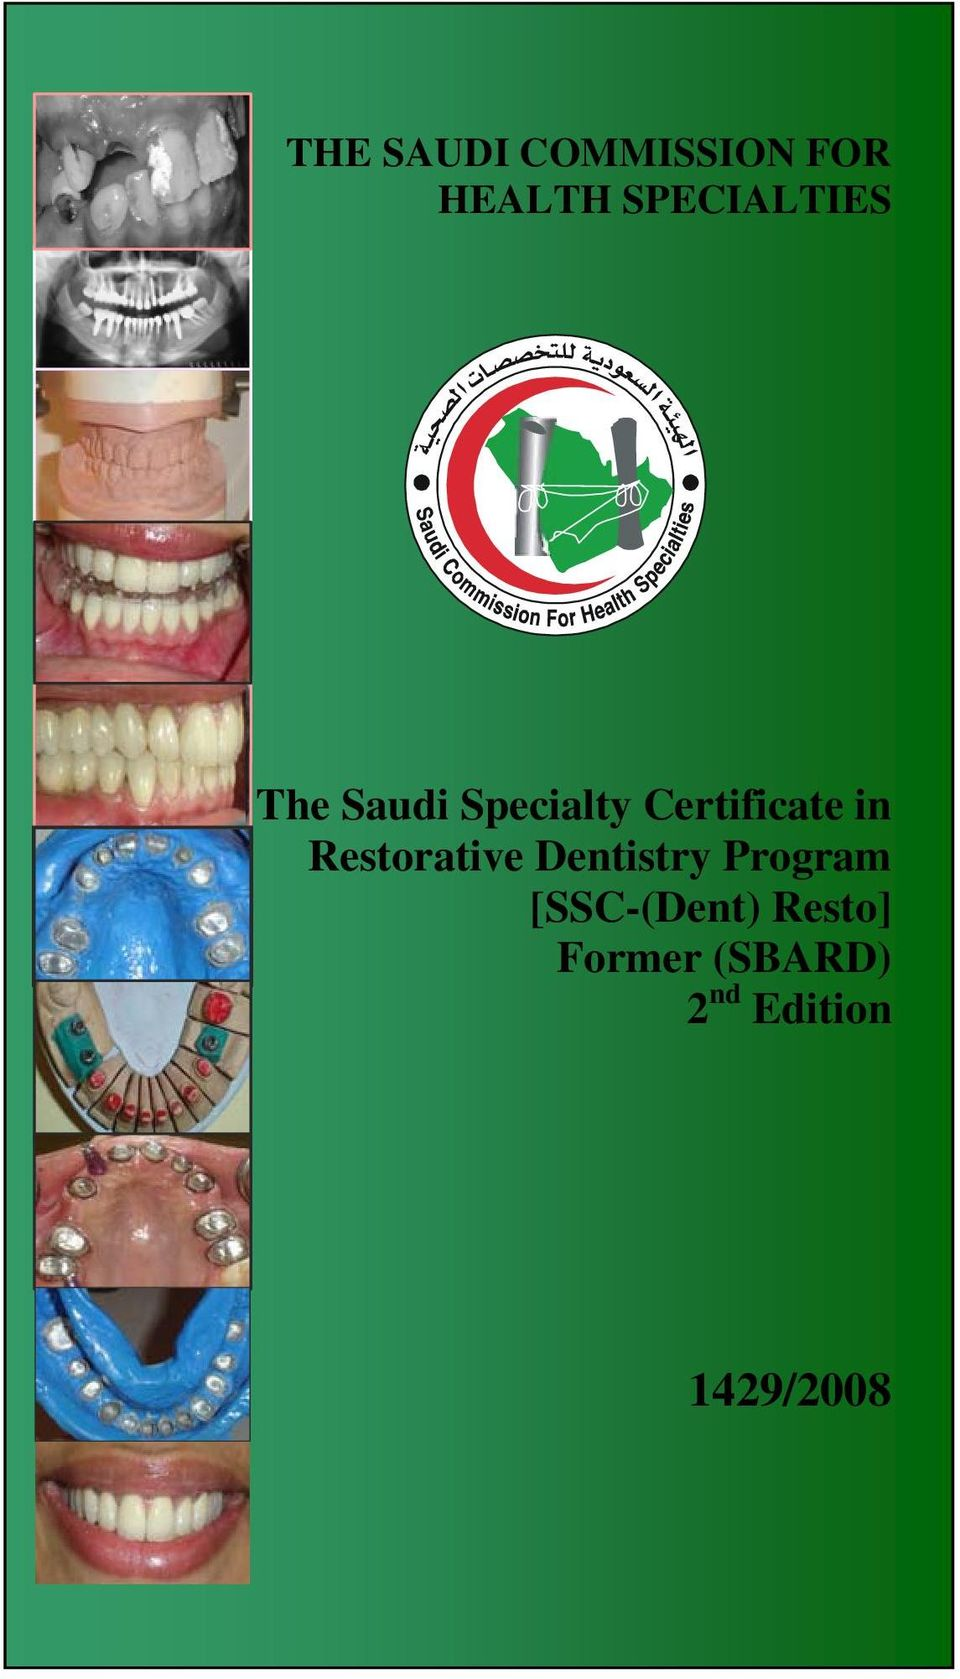 Certificate in Restorative Dentistry